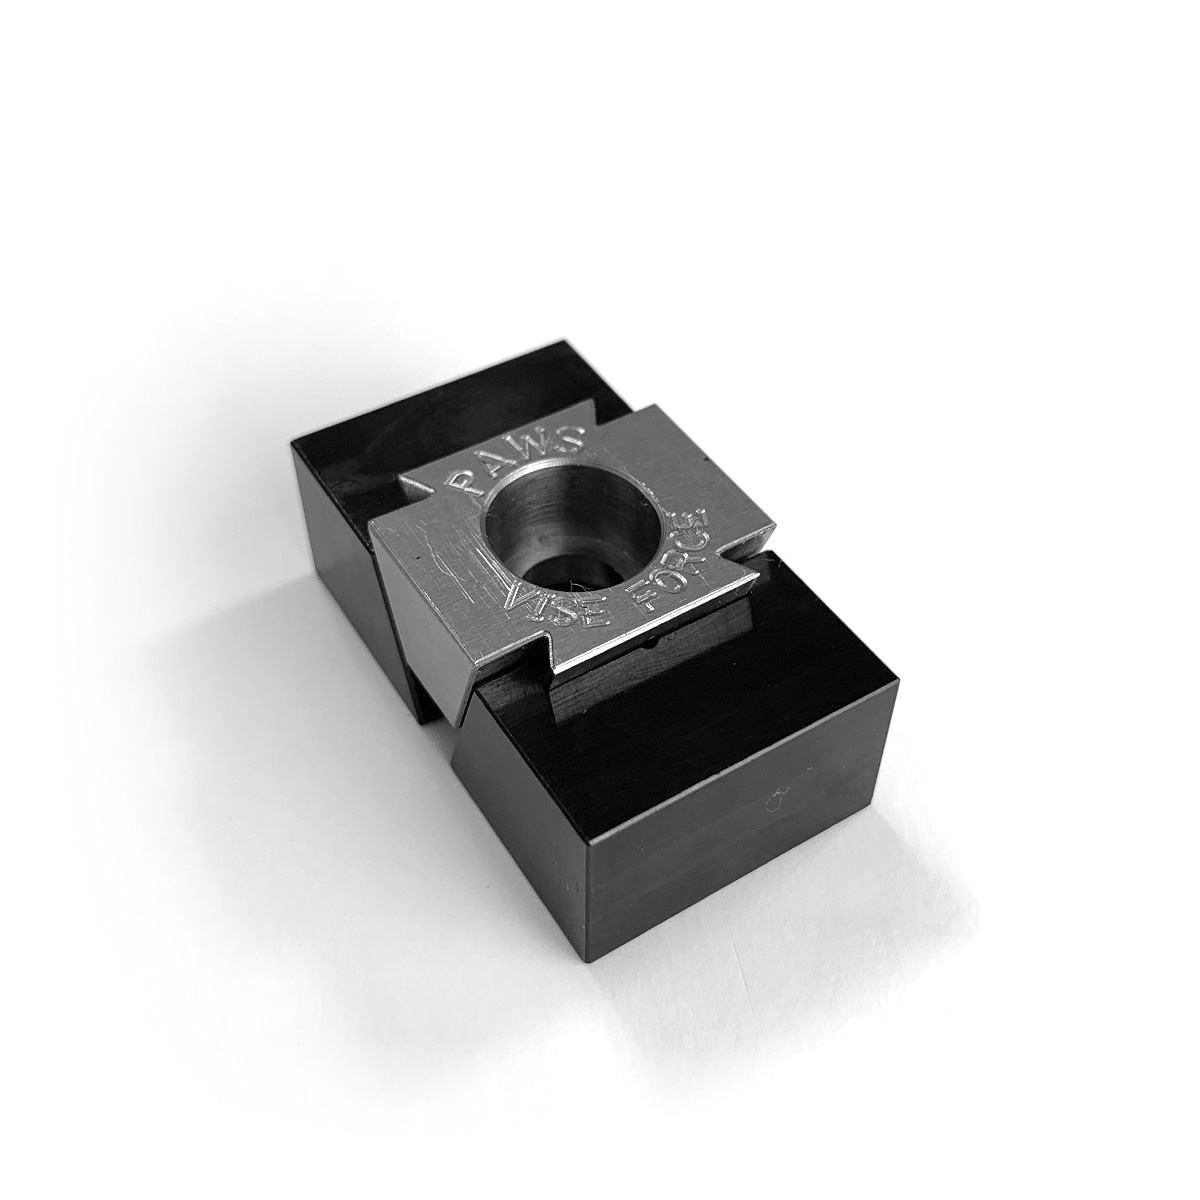 Vise Force 1 +8mm Machinable Jaw Workholding Clamp